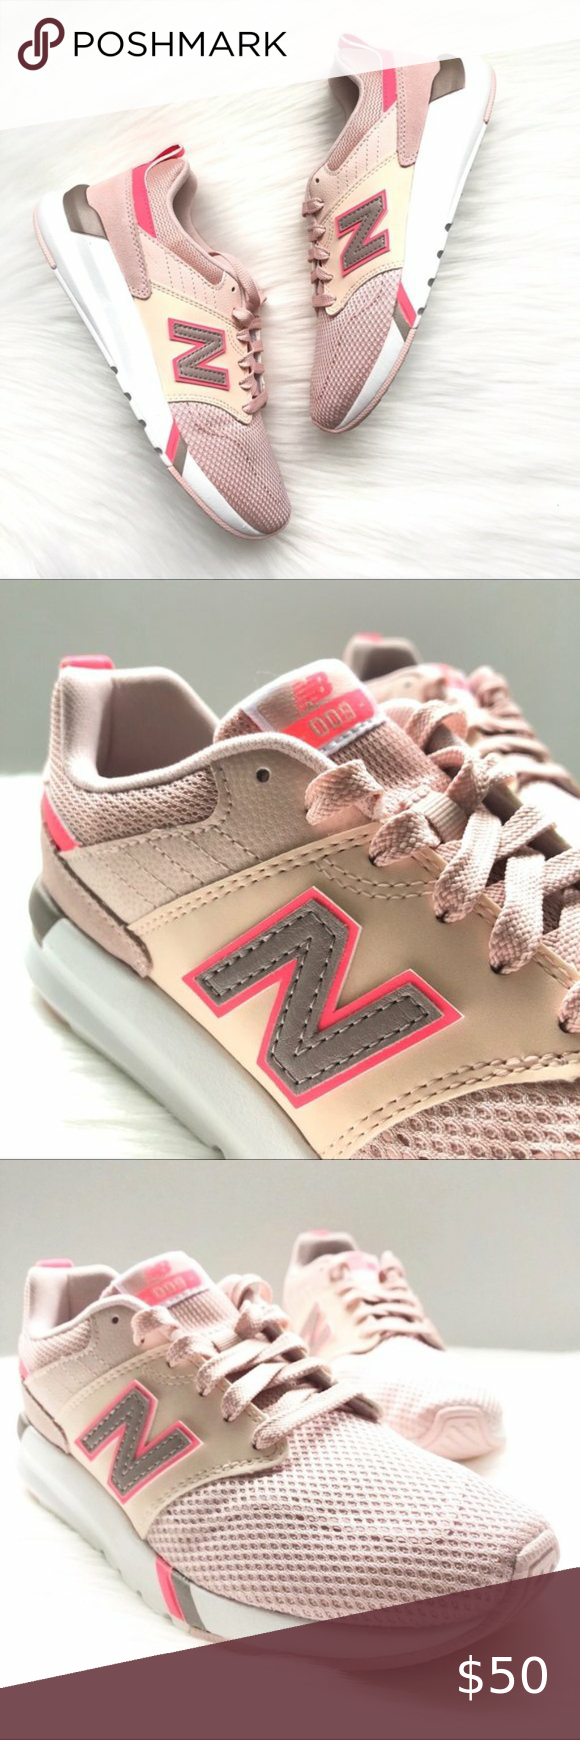 Athletic sneakers, New balance pink